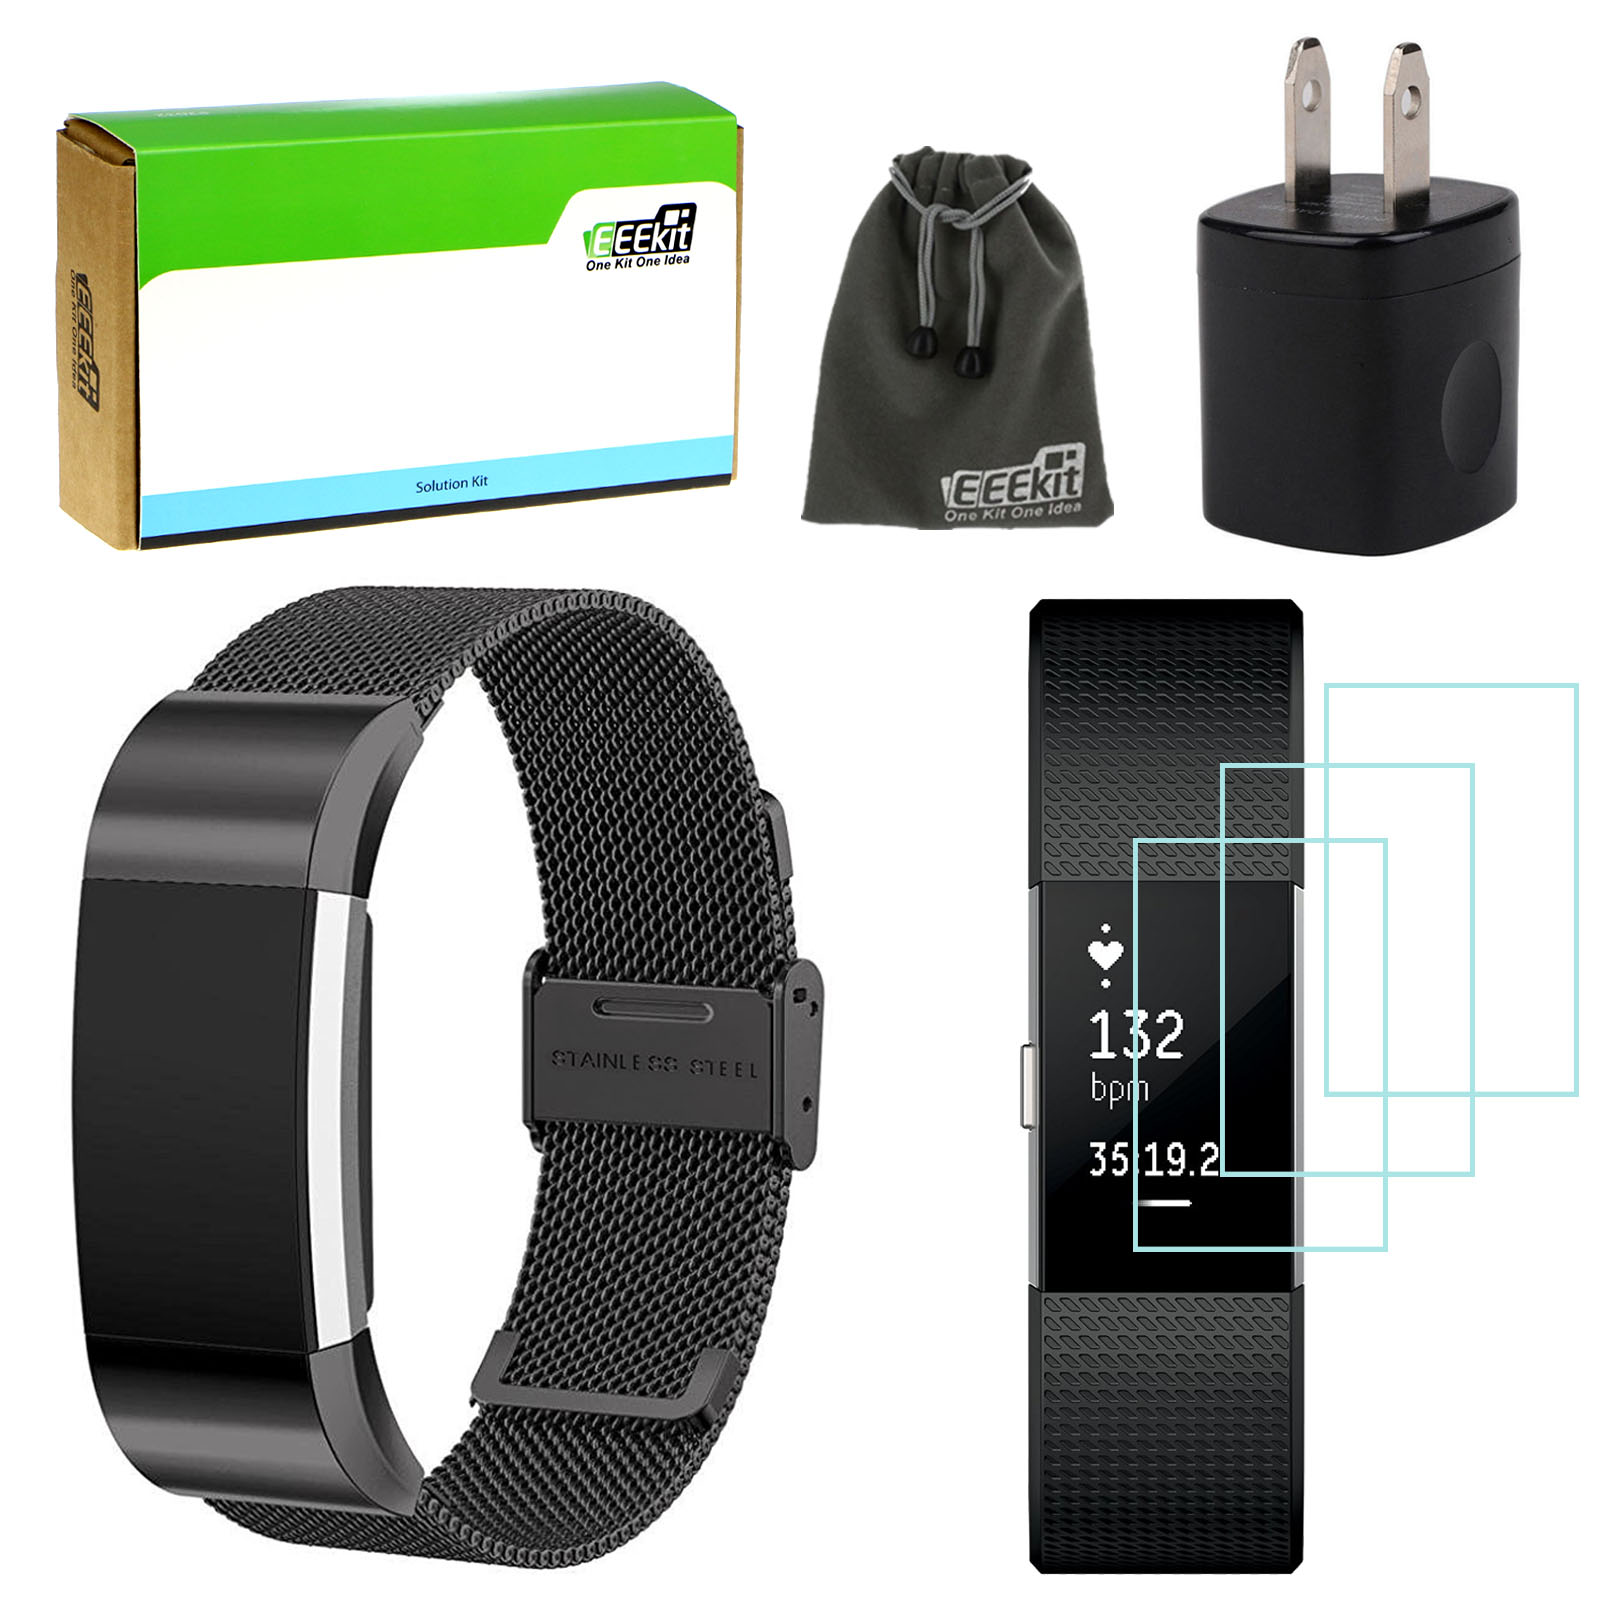 EEEKit for Fitbit Charge 2,Milanese Stainless Steel Strap Replacement Band,3 Pcs HD Clear Screen Protector, Wall Charger